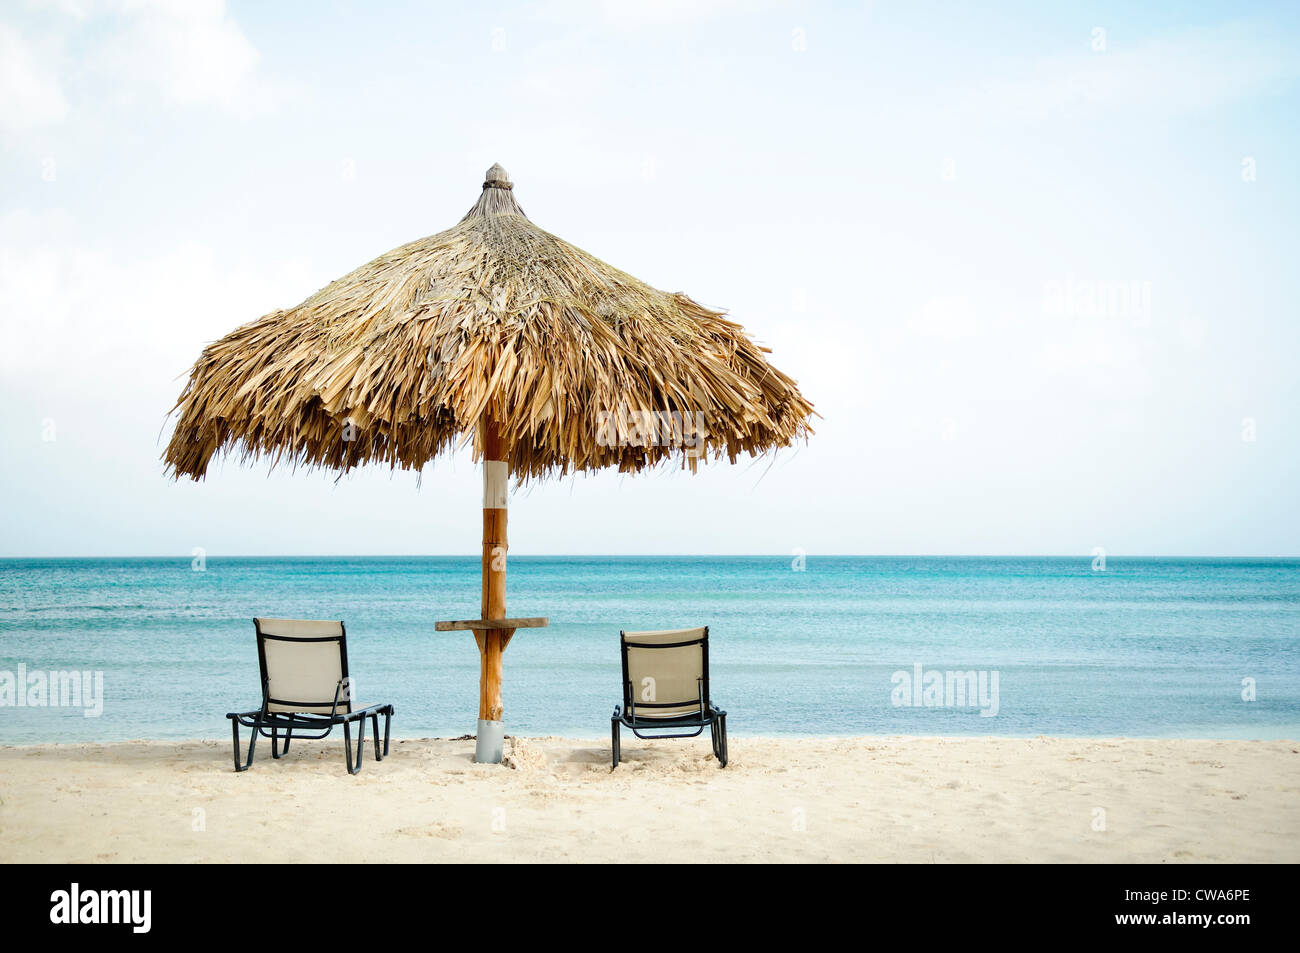 Parasol and sun loungers on beach - Stock Image